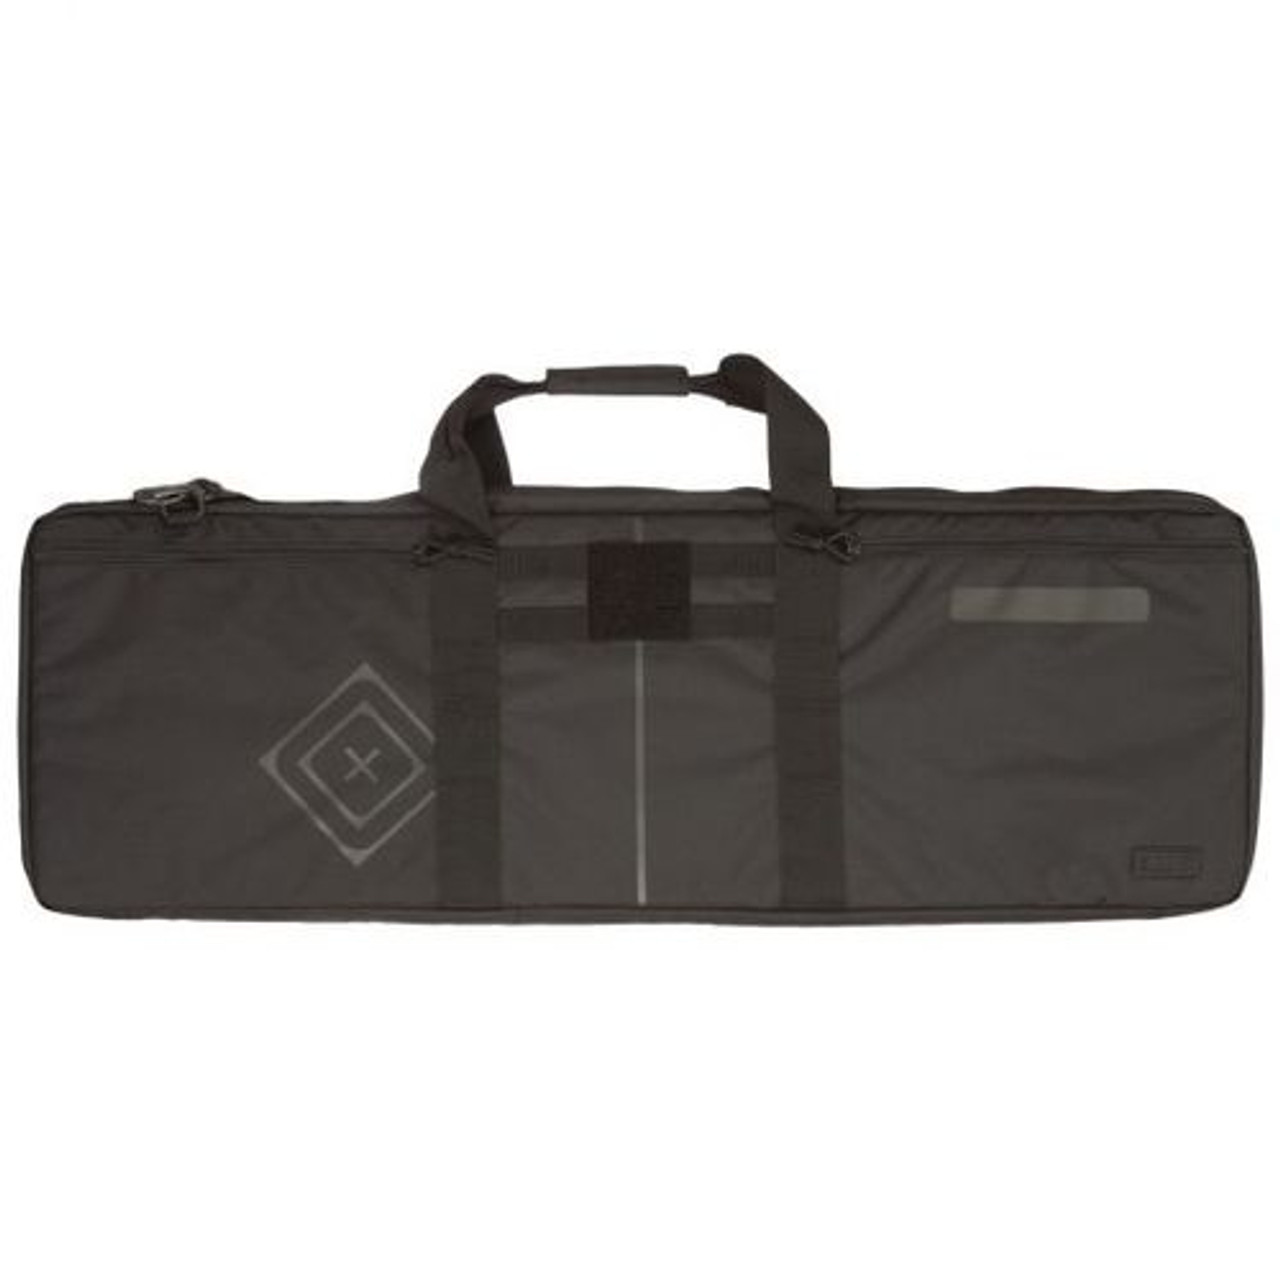 "5.11 Tactical 36"" SHOCK RIFLE SOFT CASE, 600D polyester exterior and 300D padded polyester interior, Lightweight, professional, affordable, Integrated rifle retention straps, Locking main compartment zippers, 56219"